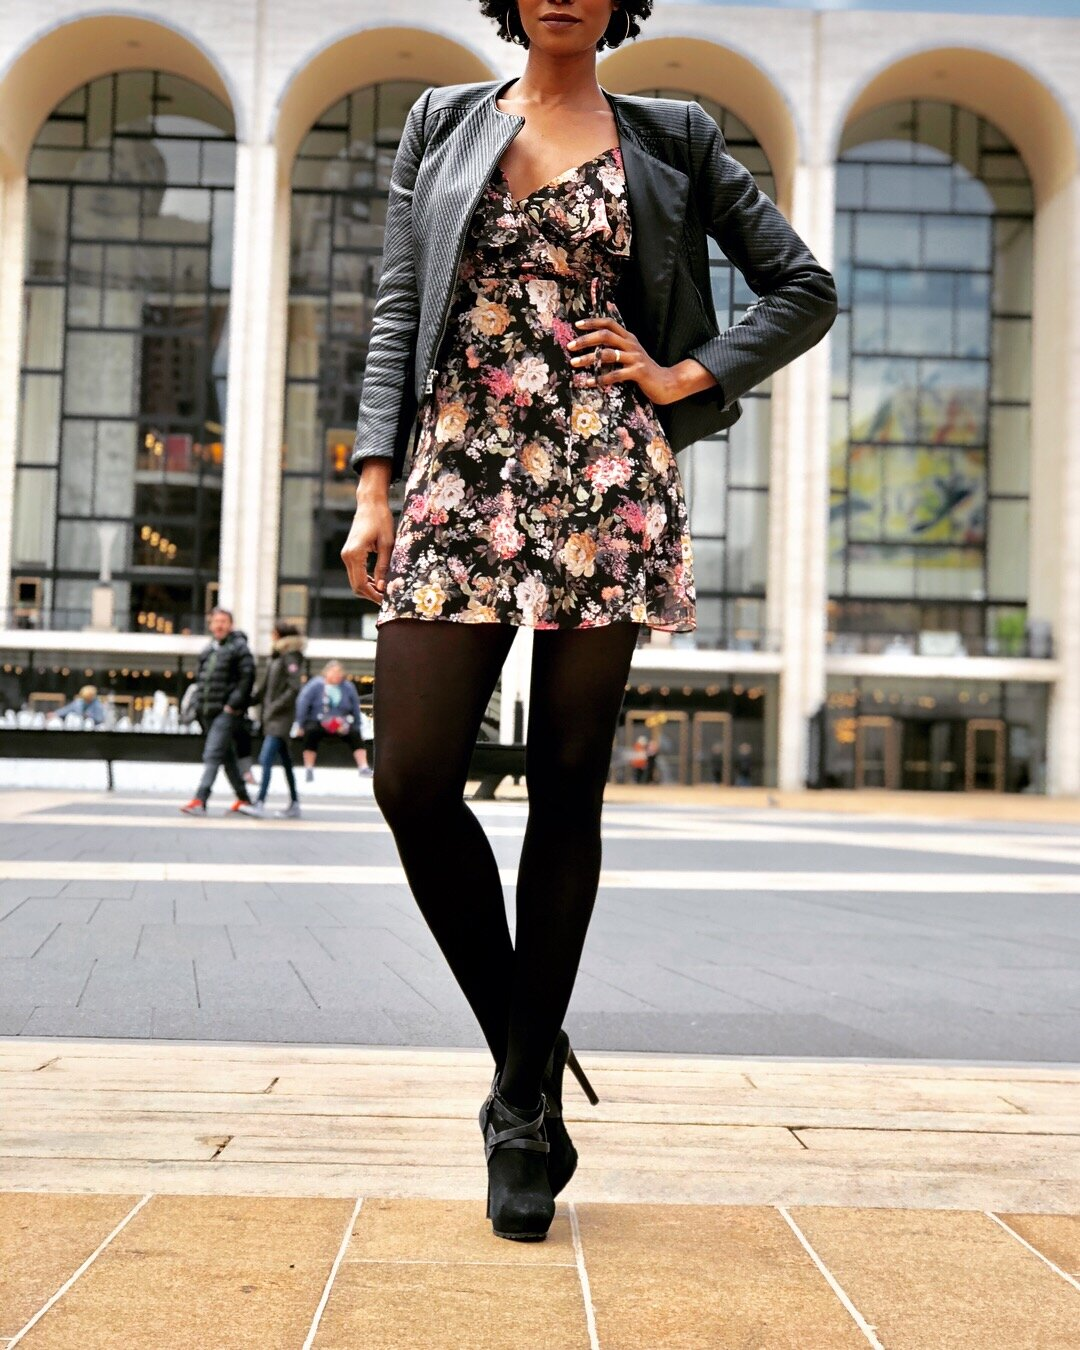 Dark Floral Dresses are great way to transition into Fall